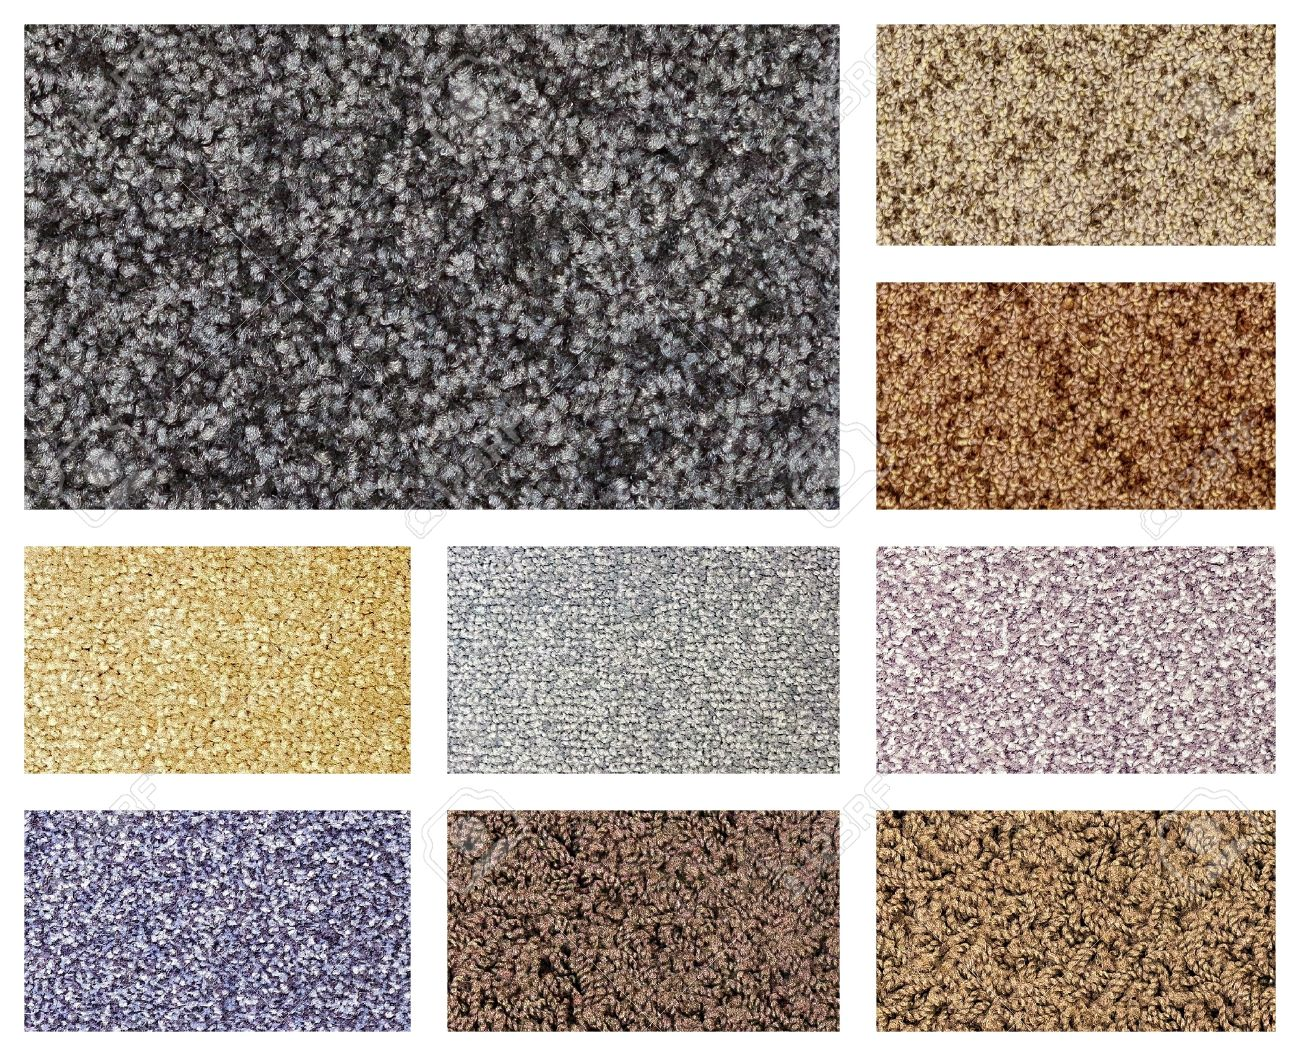 Color Variations Of Different Types Of Carpets And Floor Coverings ...